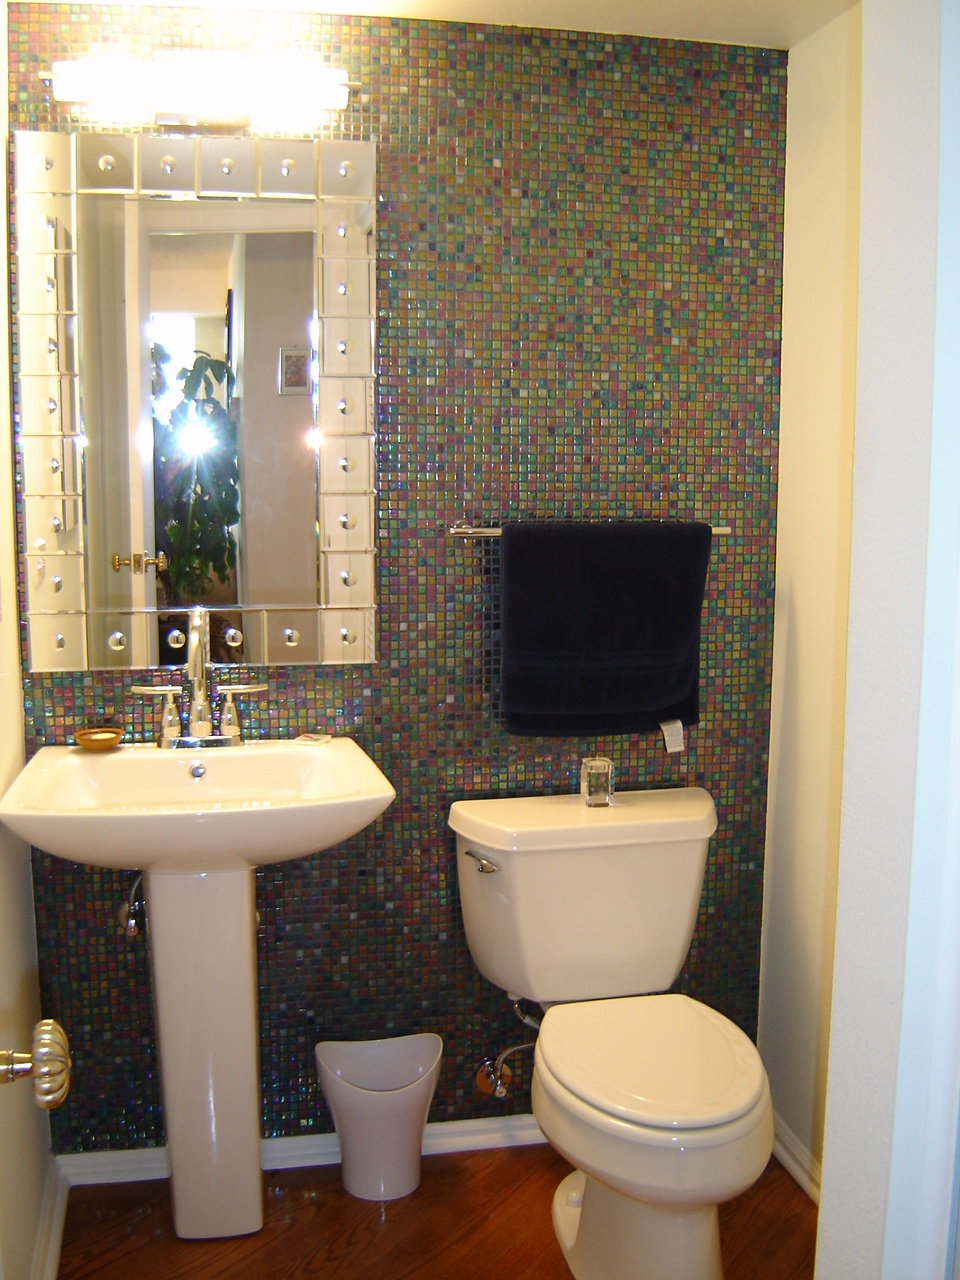 Toilet Room Designs: Litwin Powder Room, Remodel, Denver, CO